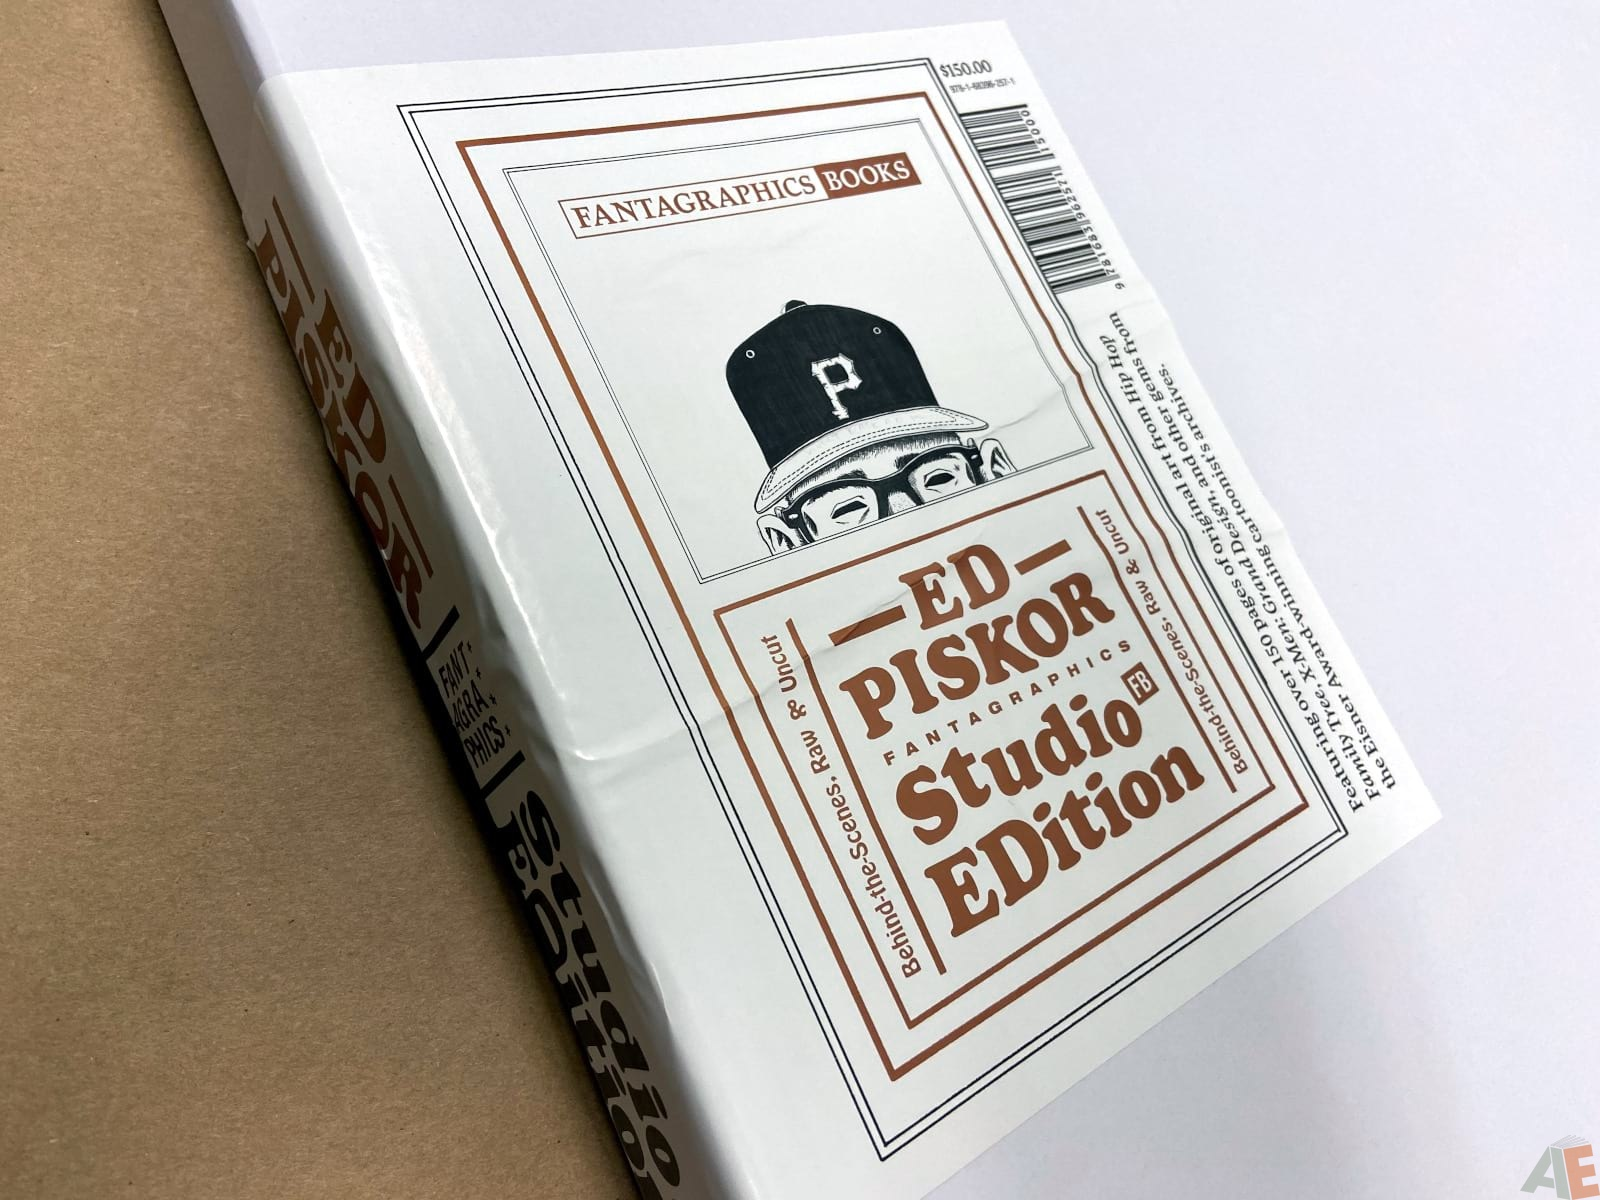 Ed Piskor The Fantagraphics Studio Edition interior 21